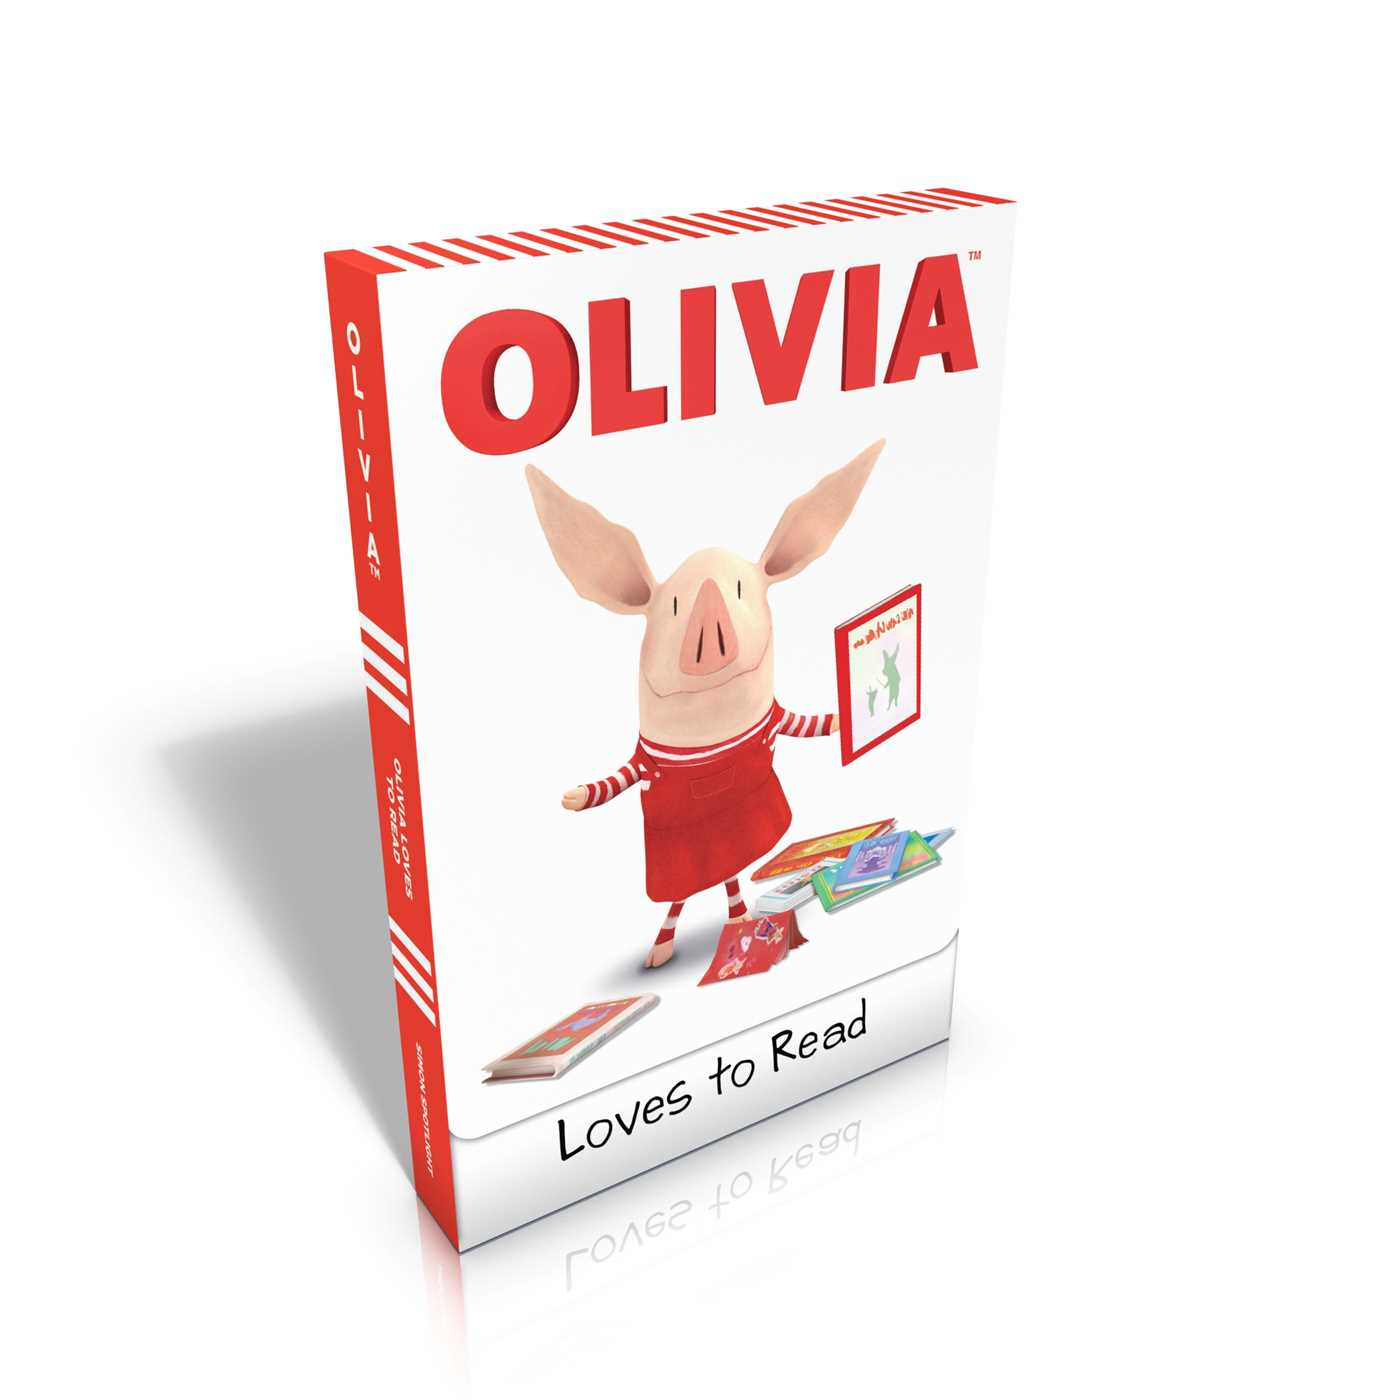 Olivia-loves-to-read-9781442458796_hr